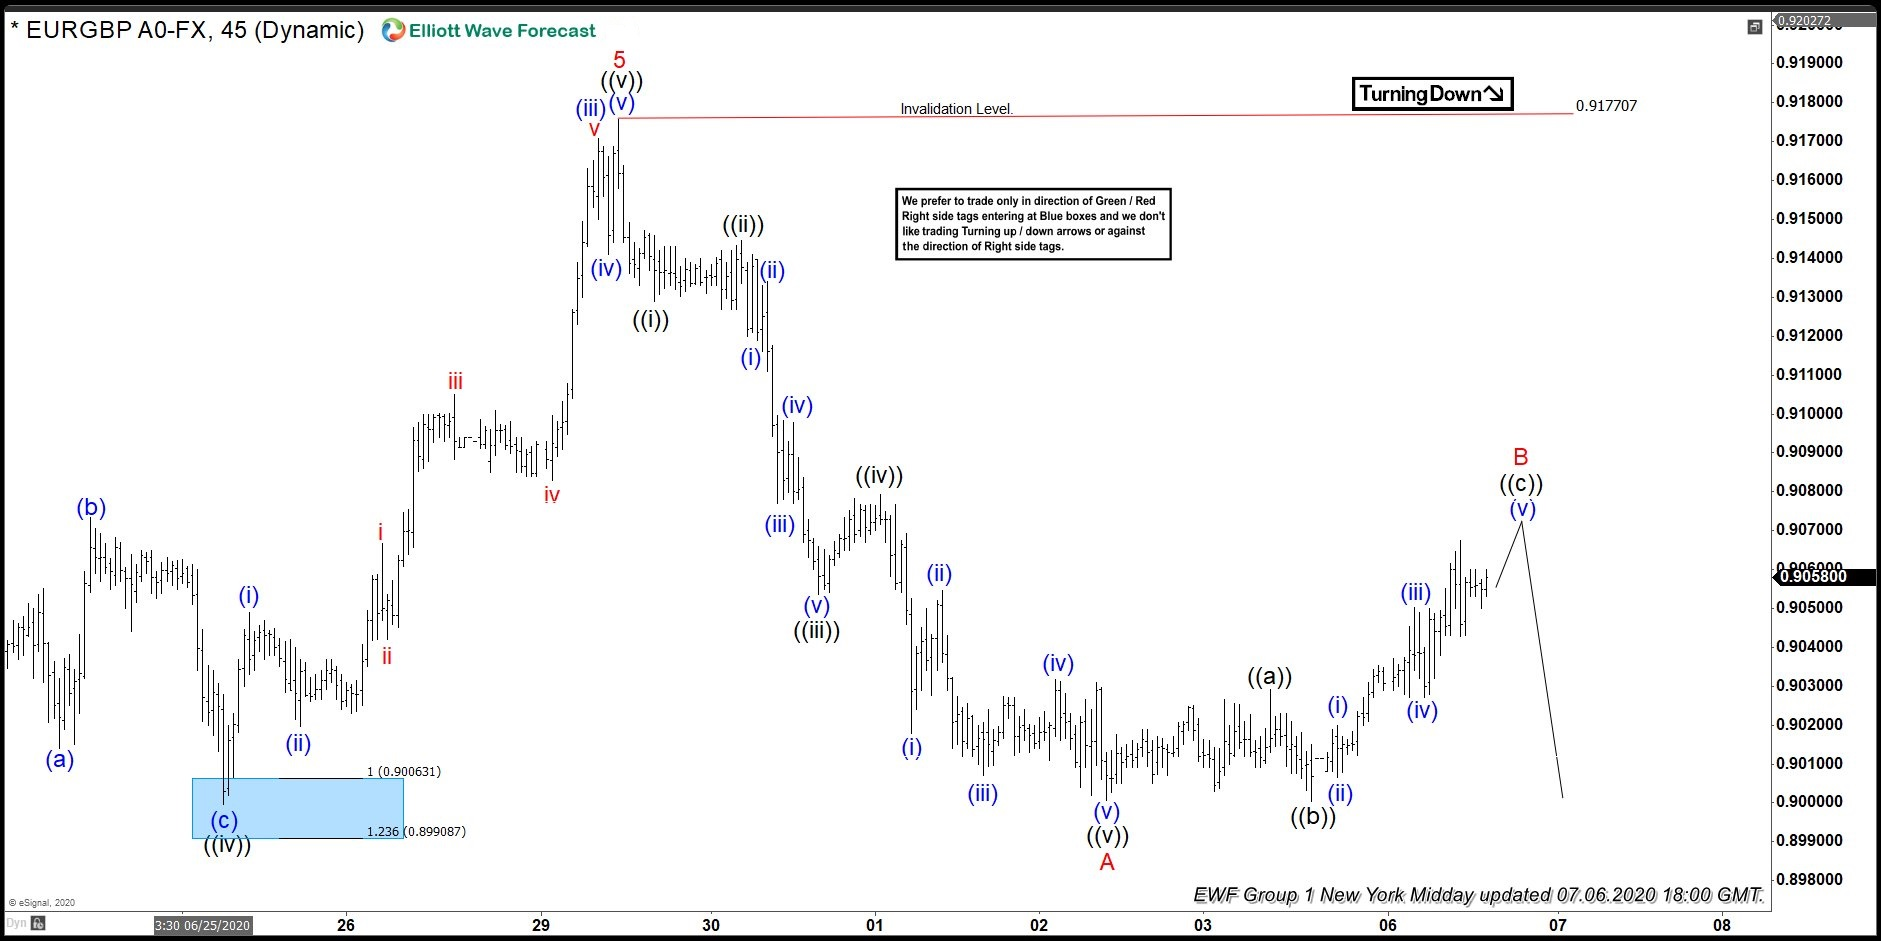 EURGBP 7.6.2020 NY Midday Update